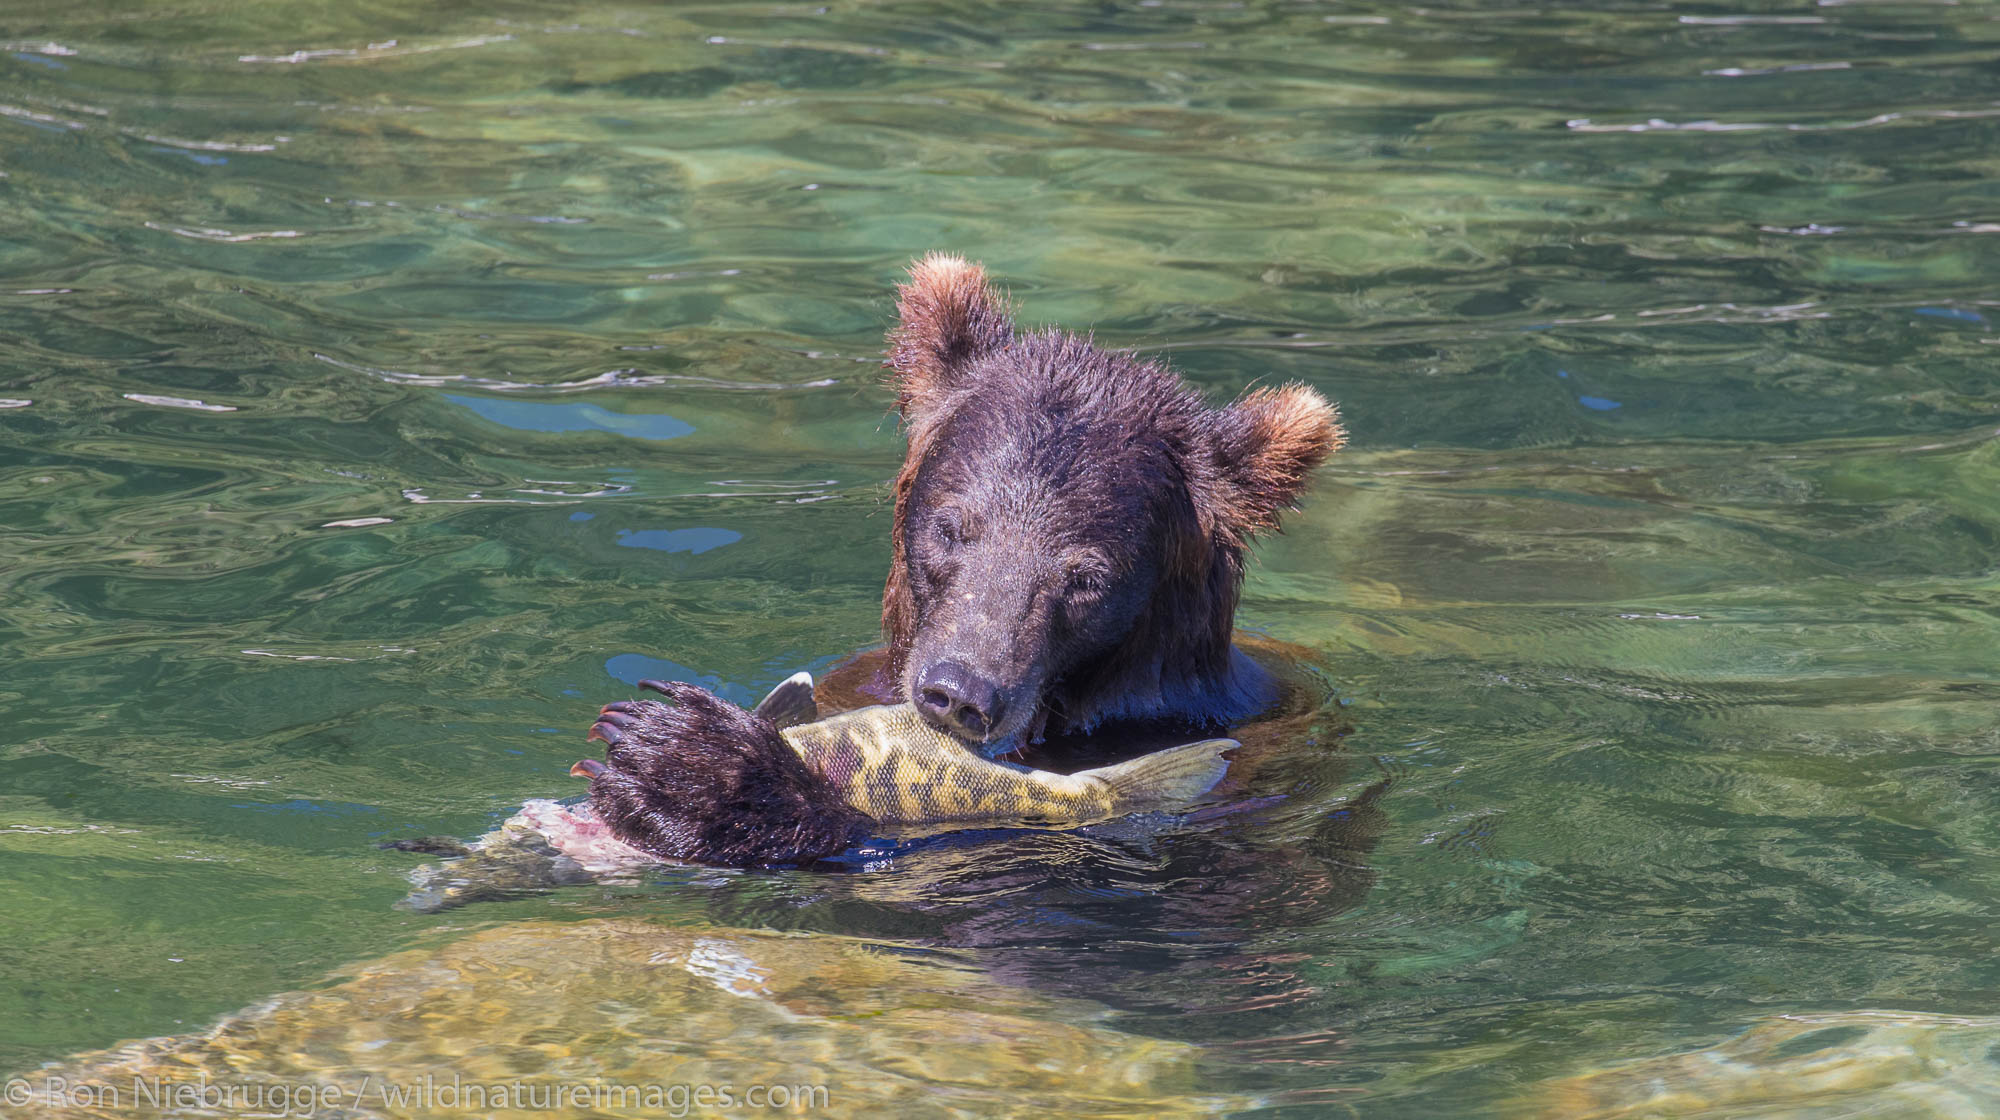 Grizzly Bear, Tongass National Forest, Alaska.